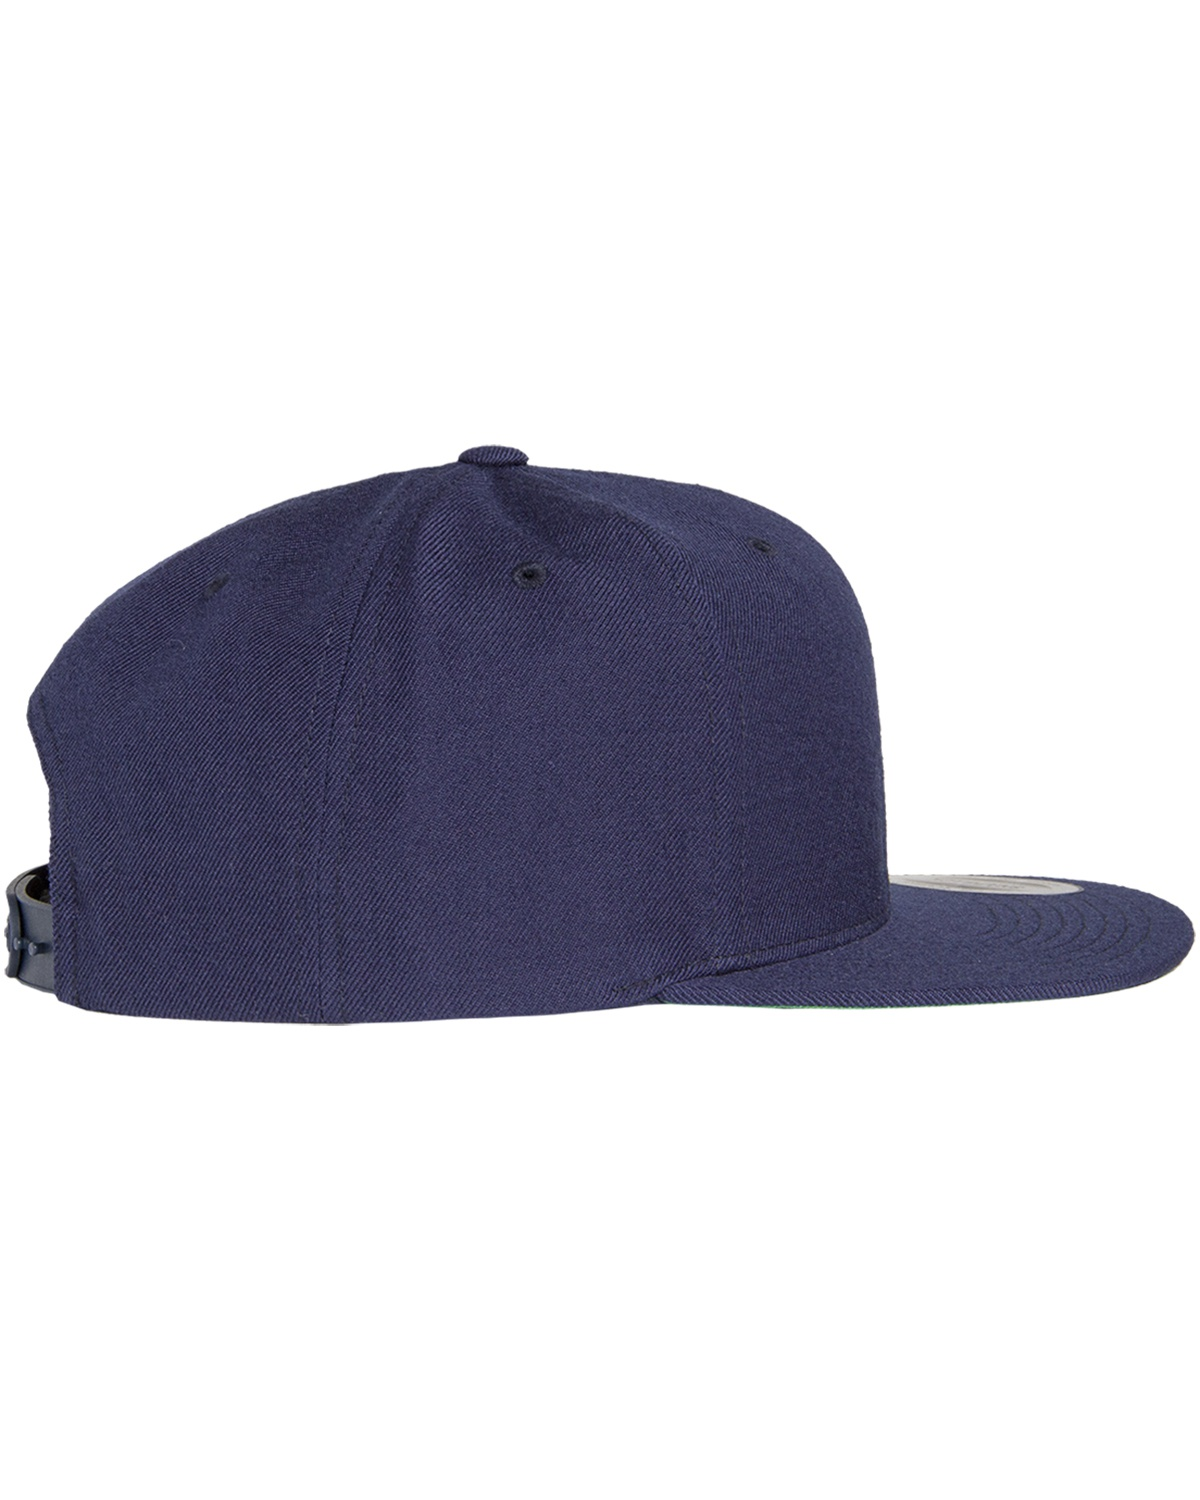 528a0823c Yupoong 6089 | Buy Adult 6-Panel Structured Flat Visor Classic ...